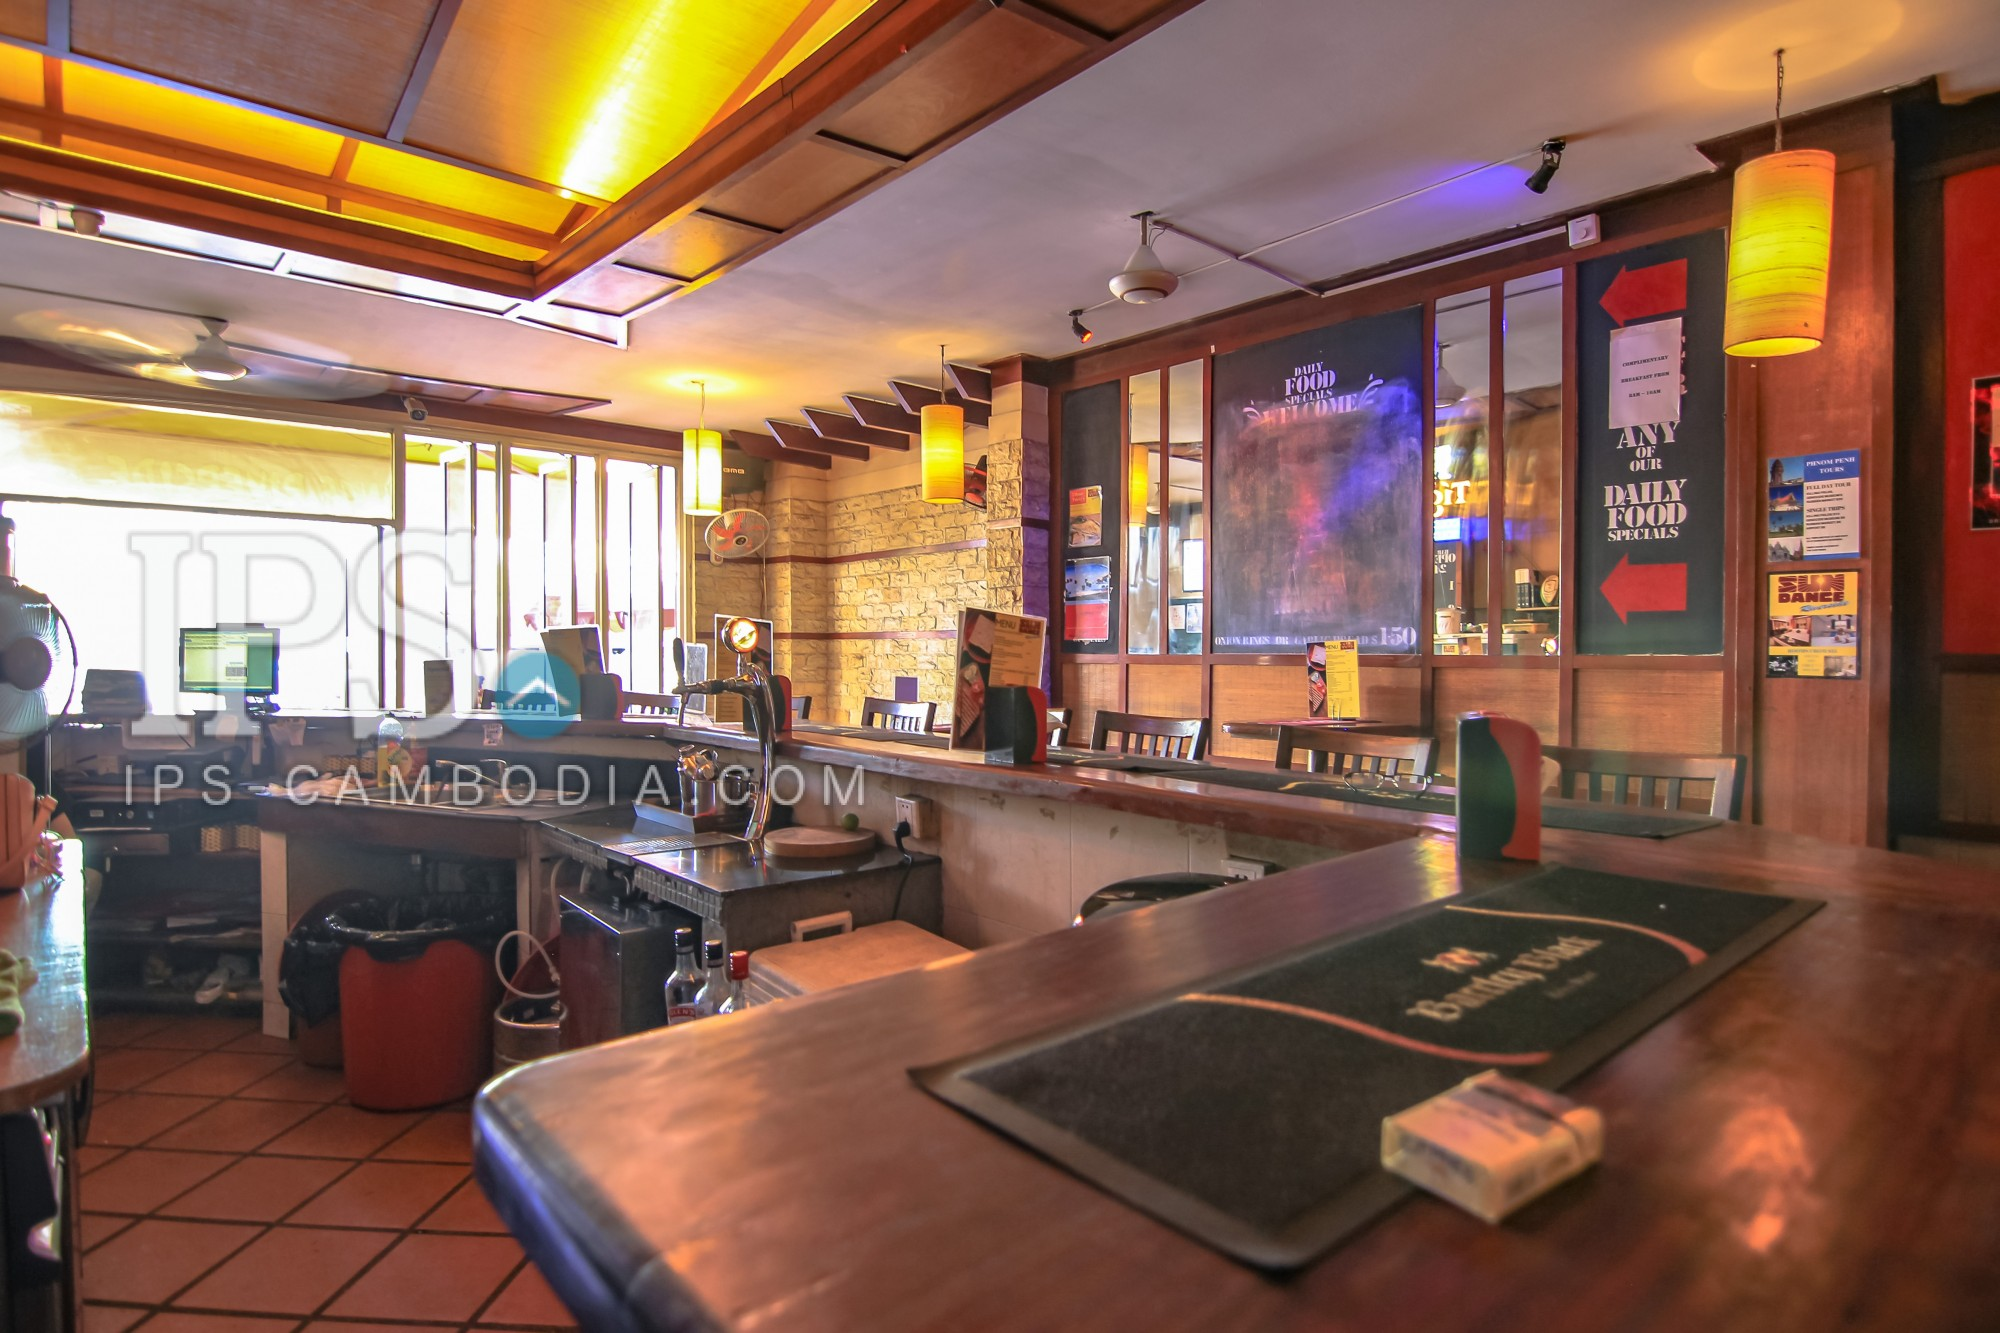 15 Room Guesthouse with a Sports Bar and Restaurant Business For Sale - Riverside